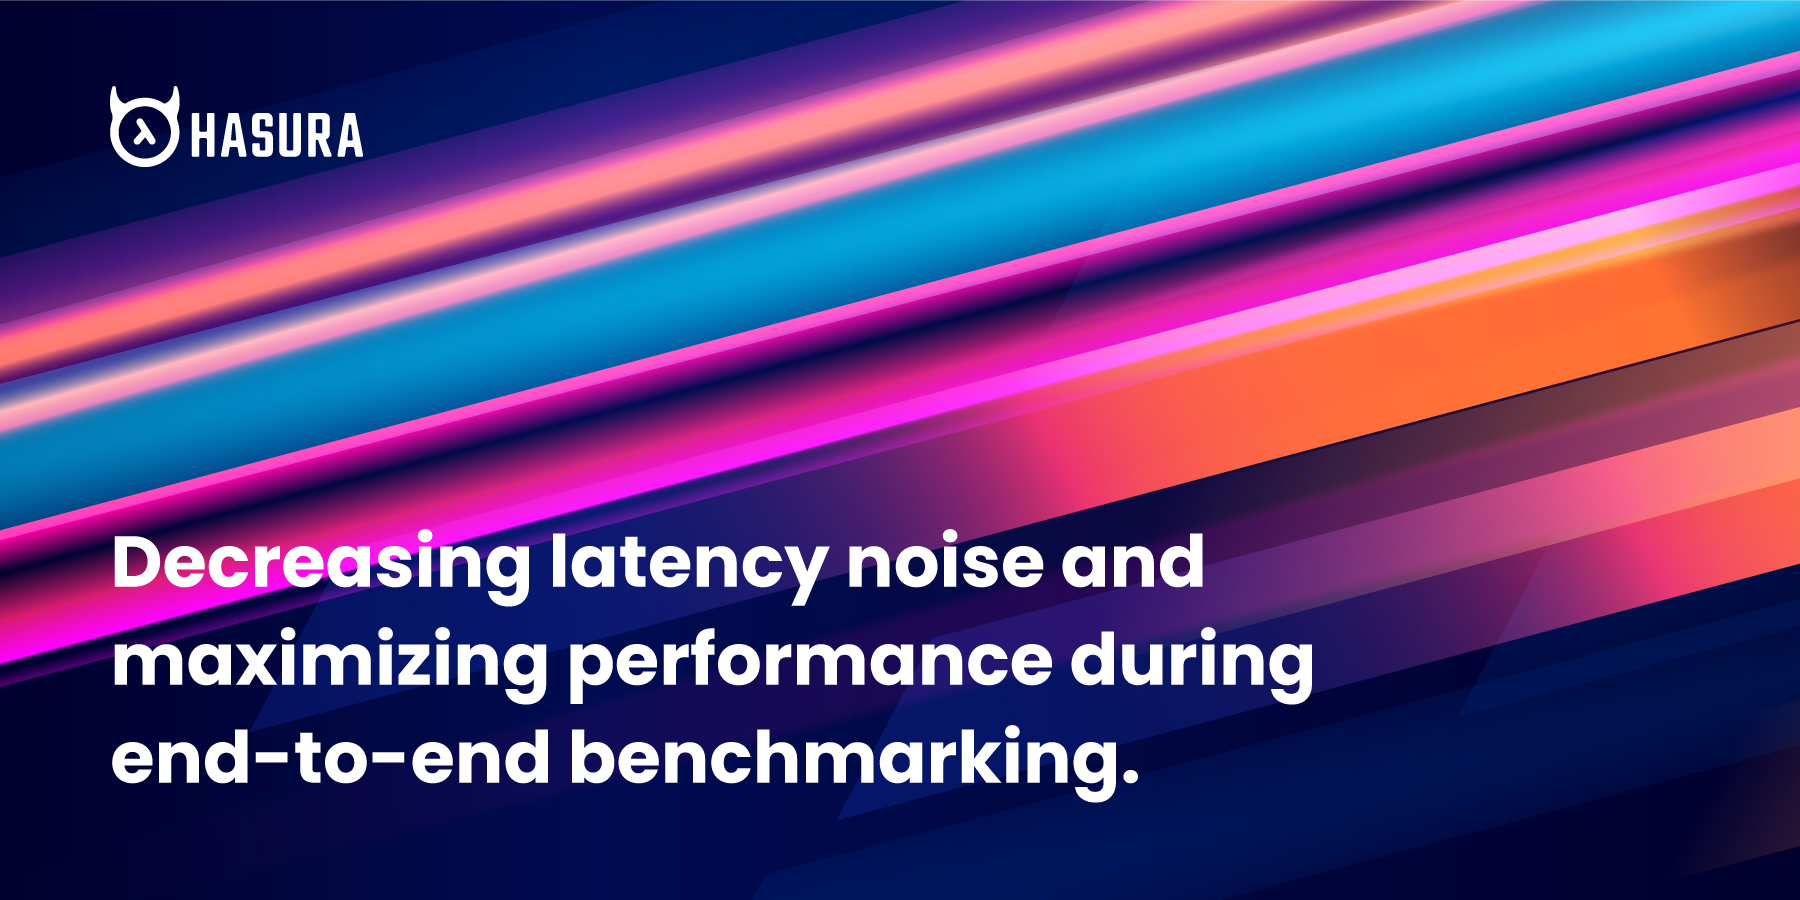 Decreasing latency noise and maximizing performance during end-to-end benchmarking